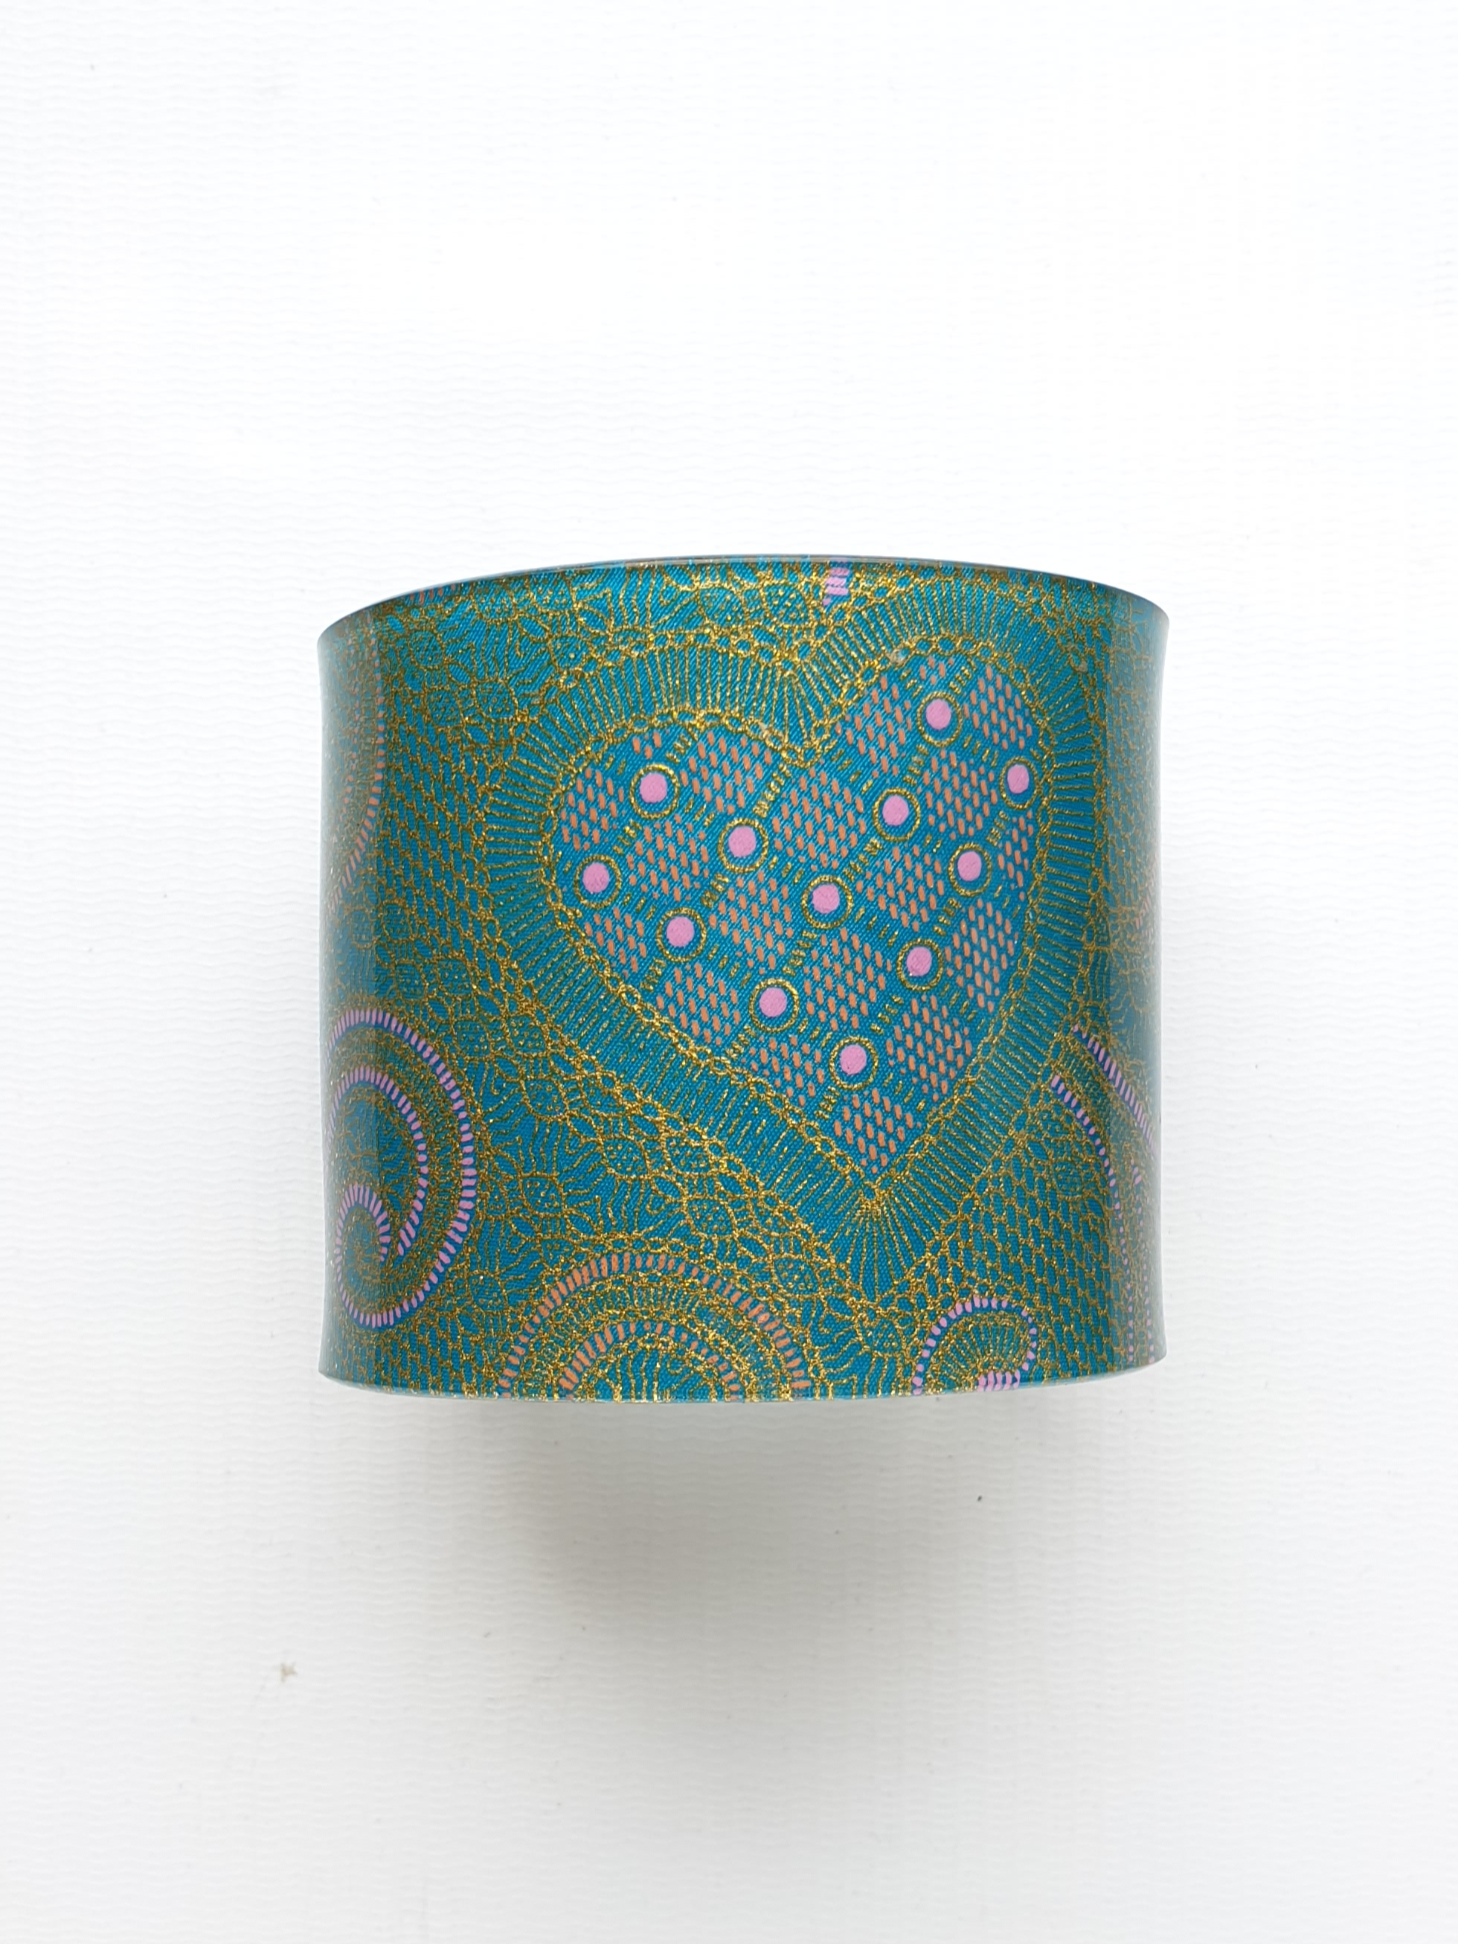 cuff resin heart print/teal